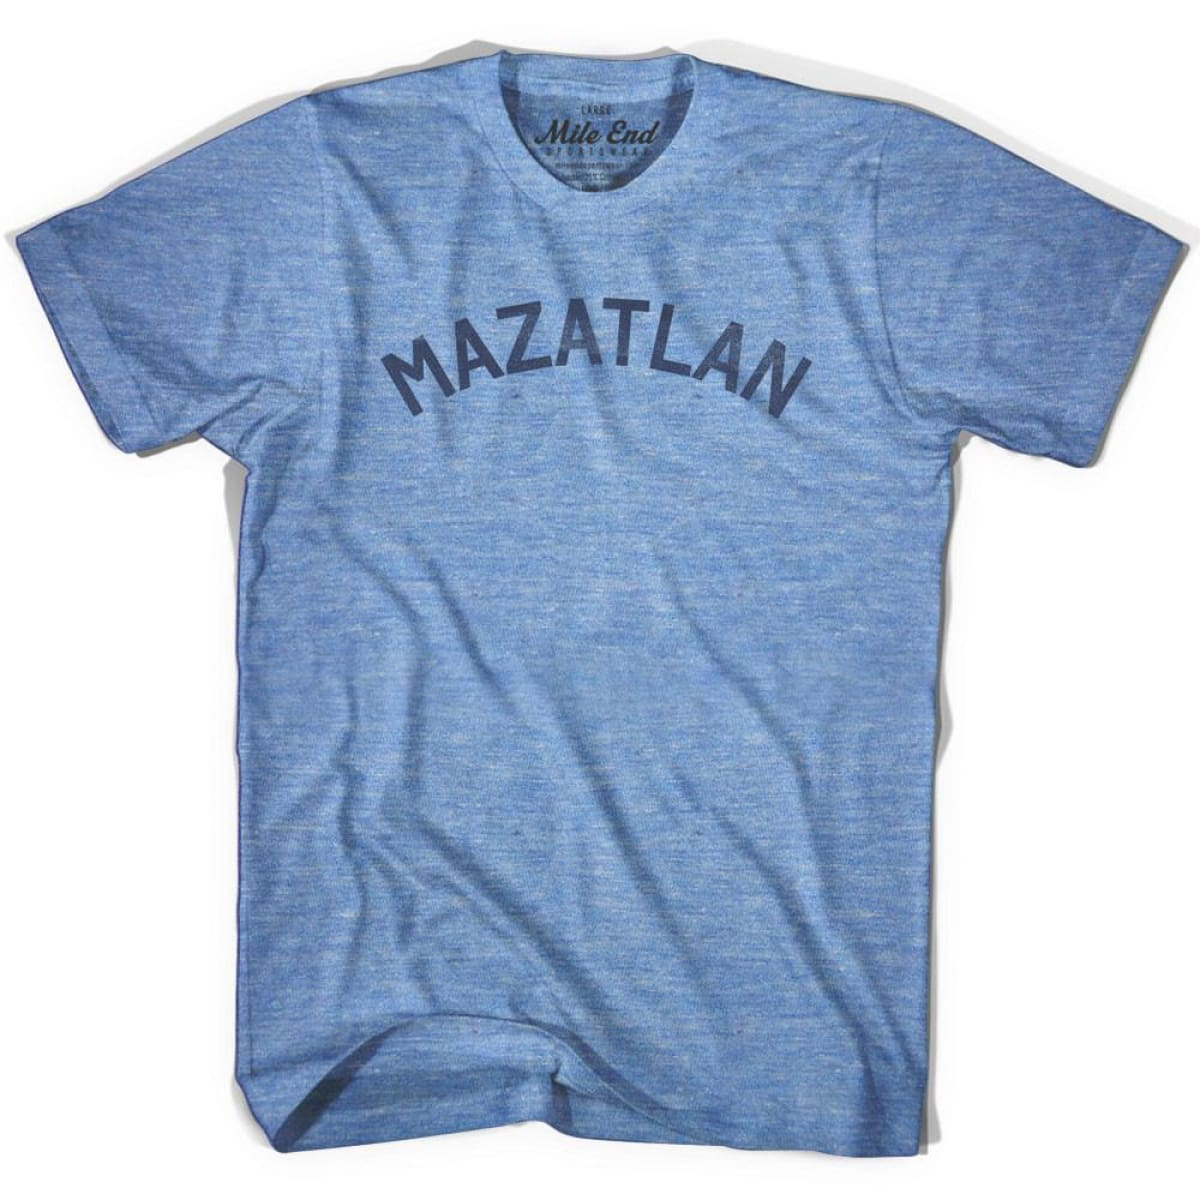 Mazatlan City Vintage T-shirt - Athletic Blue / Adult X-Small - Mile End City